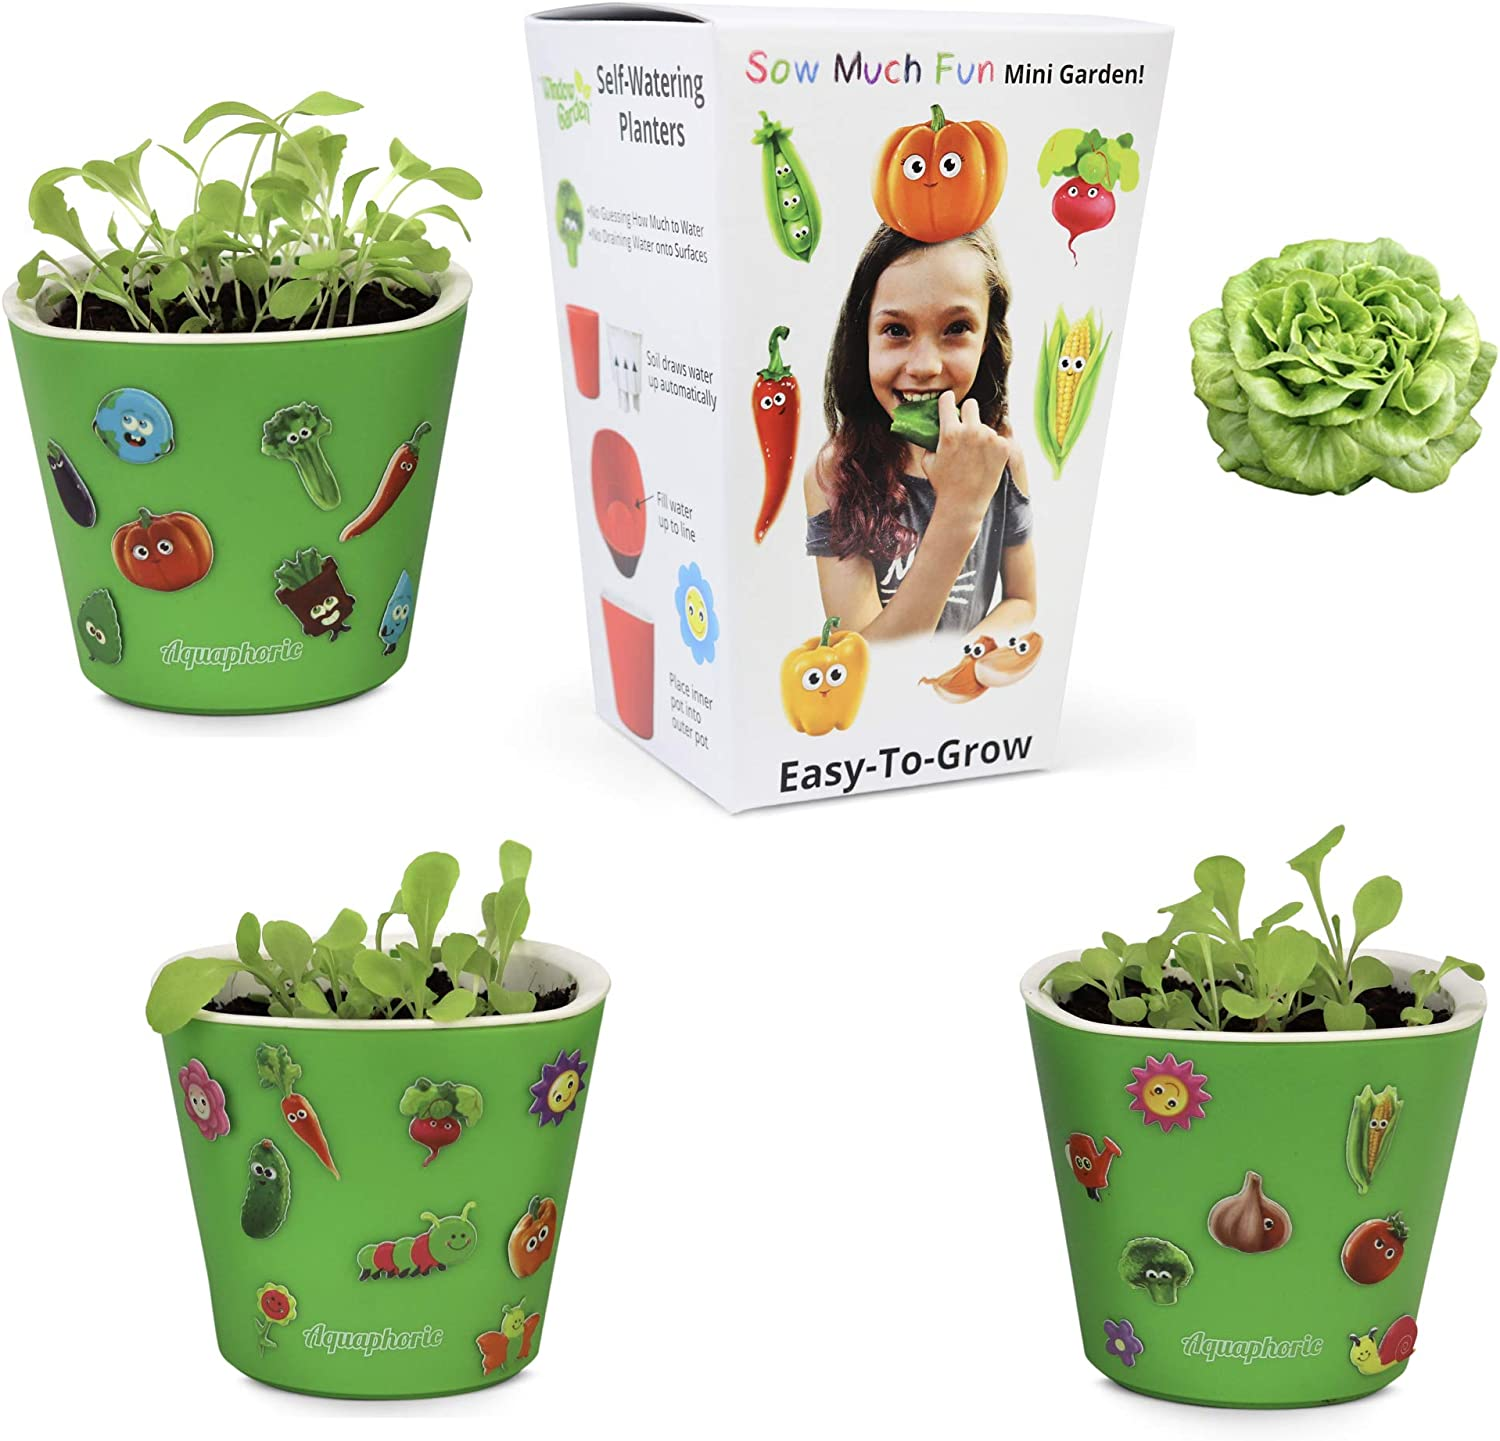 Window Garden Sow Much Fun Seed Starting, Vegetable Planting and Growing Kit for Kids, 3 Self Watering Planters, Soil, Seeds and Puffy Stickers. No Mess, Easy, Works Great! (Buttercrunch Lettuce)